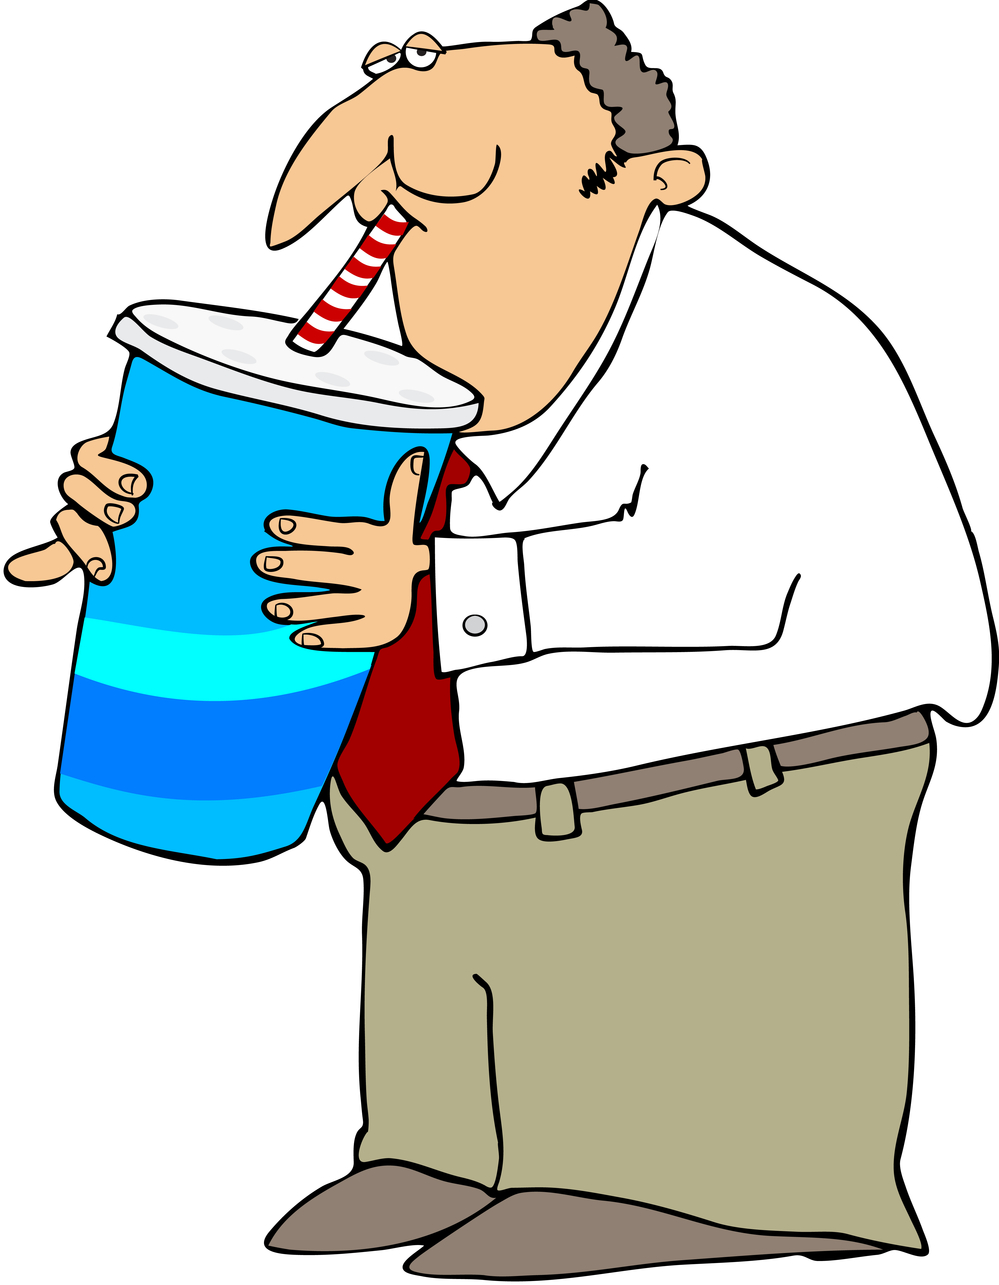 Soda can man chilling on ice clipart.